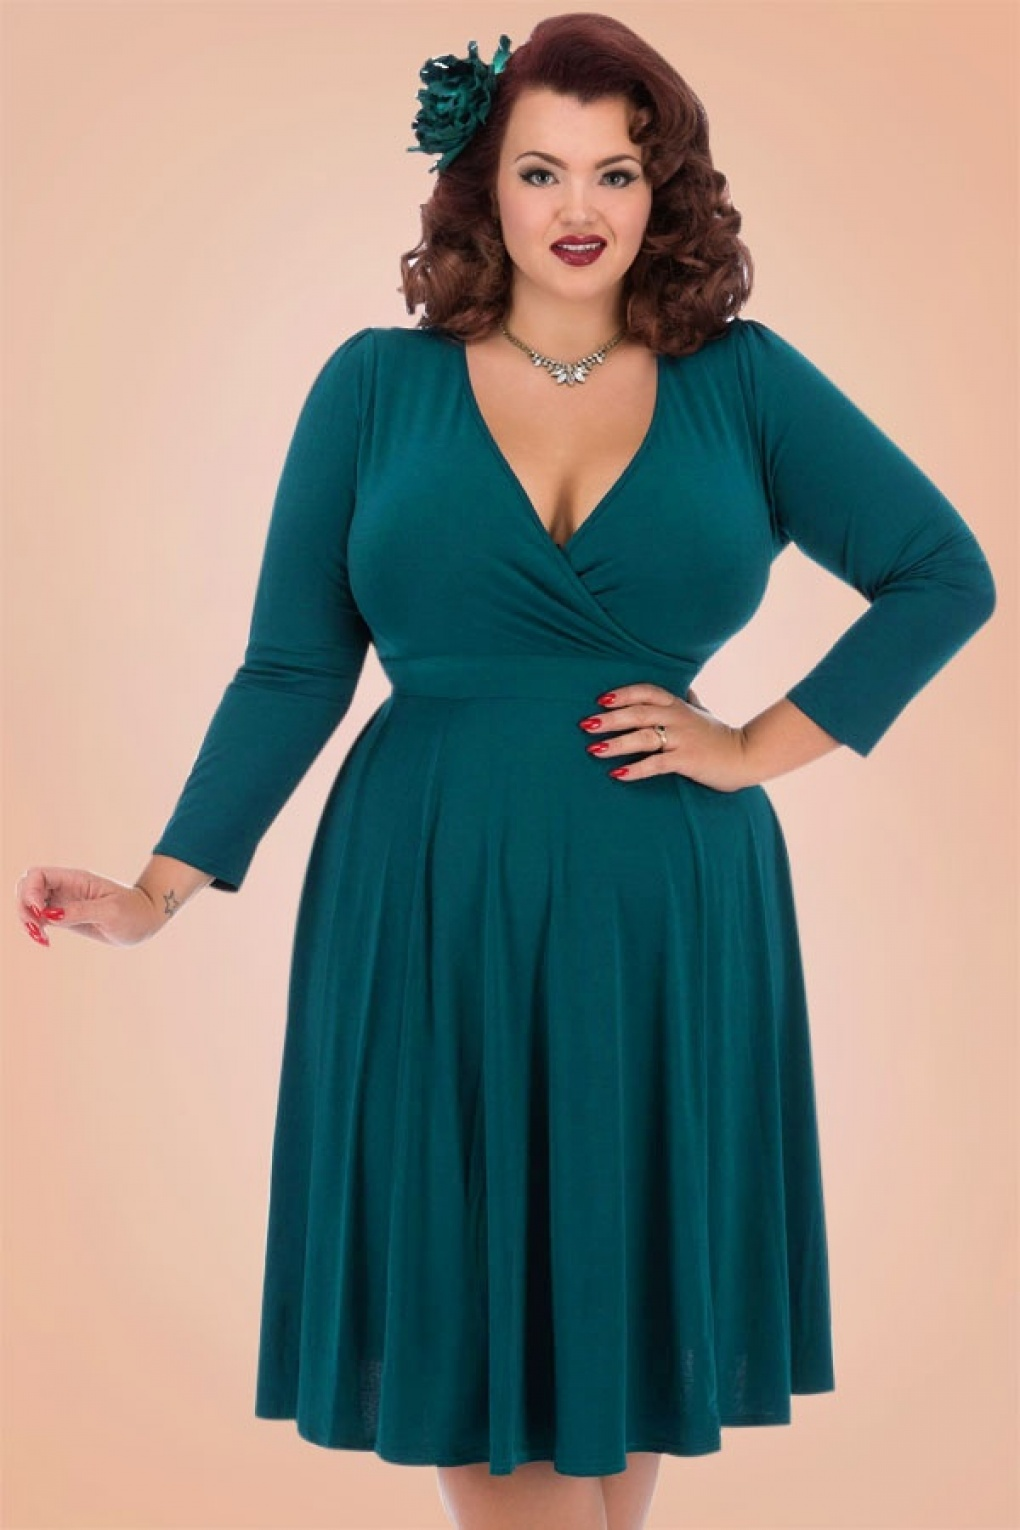 Teal Dresses With Sleeves